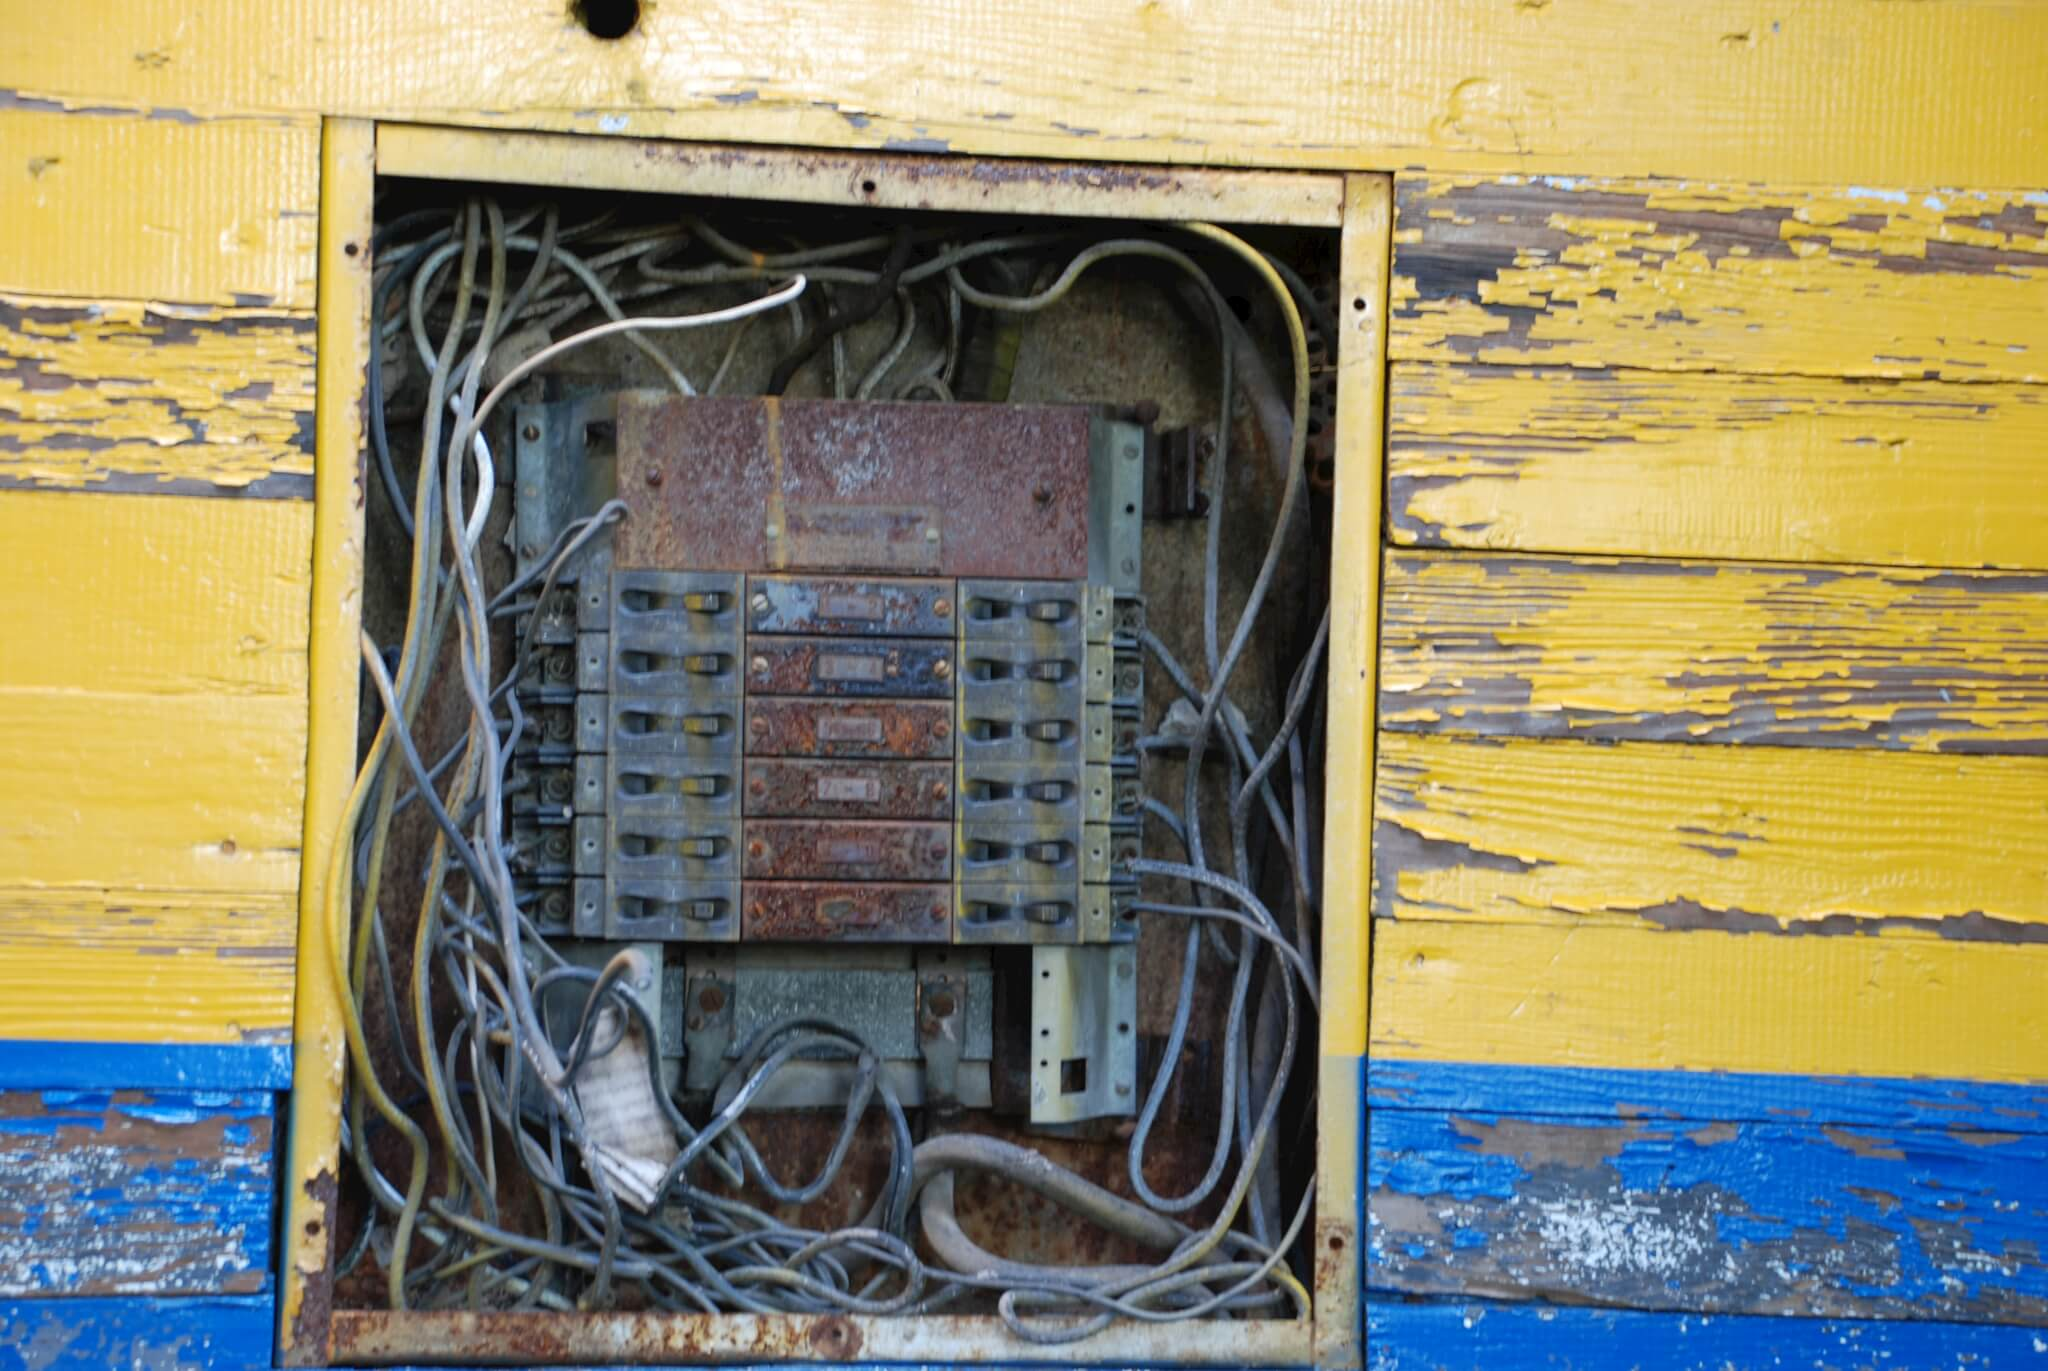 If you electrical panel looks like this call an electrician immediately!